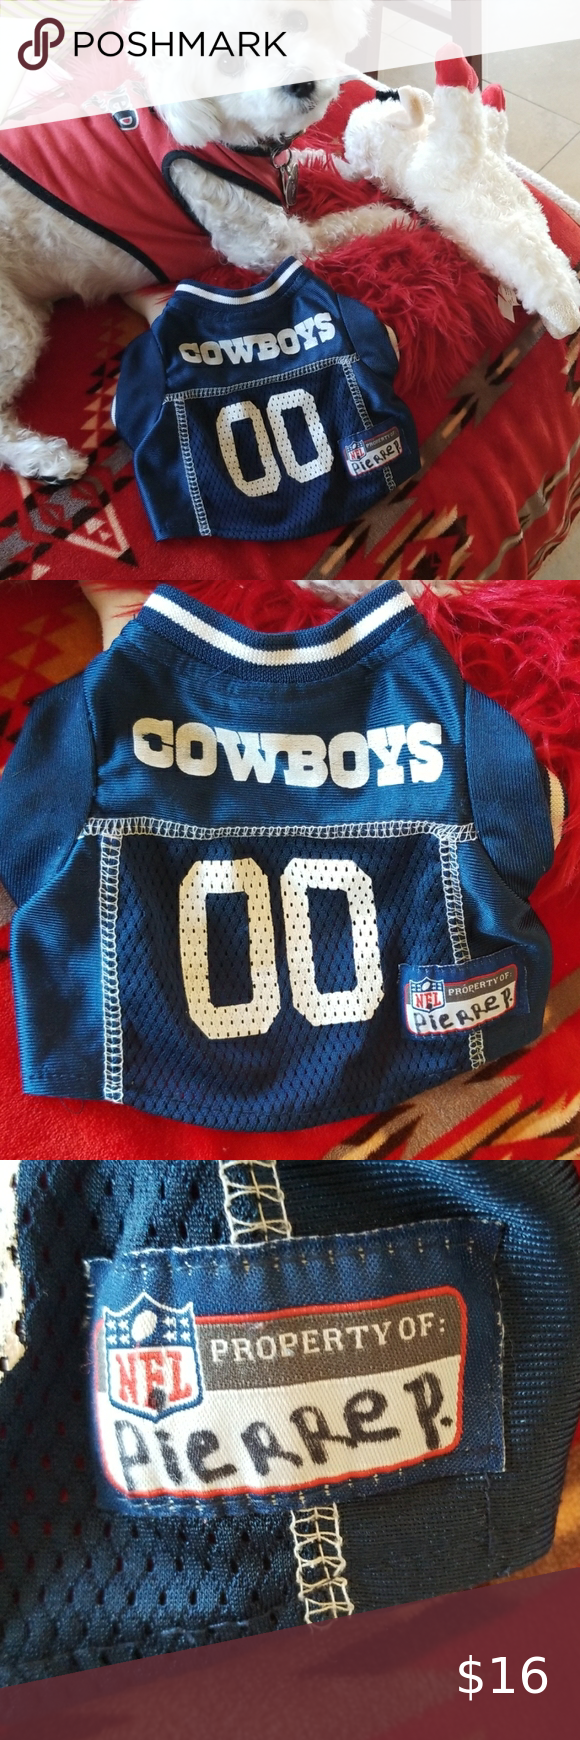 DALLAS Cowboys NFL Blue Jersey Dogs Puppy Cat  XS Great condition, this jersey is tough.  Dallas Cowboys  NFL licensed trademark pet Jersey. #00 Works for the cool cats & kittens.  UNISEX, Truly worn w loving team spirit but need a bigger size.  Size XS extra 🤣Looks like a crop top on dogs over 5 lbs. 8 lbs max, yorkie, maltese chihuahua, or pit bull puppy or siamese cat or rabbit!  Layer it under or over for a sportier warm pup. Name tag says Pierre. see pix🐈🐕🐩🐱🐶🐇 🐾Happy Poshing🐾  🏈Th